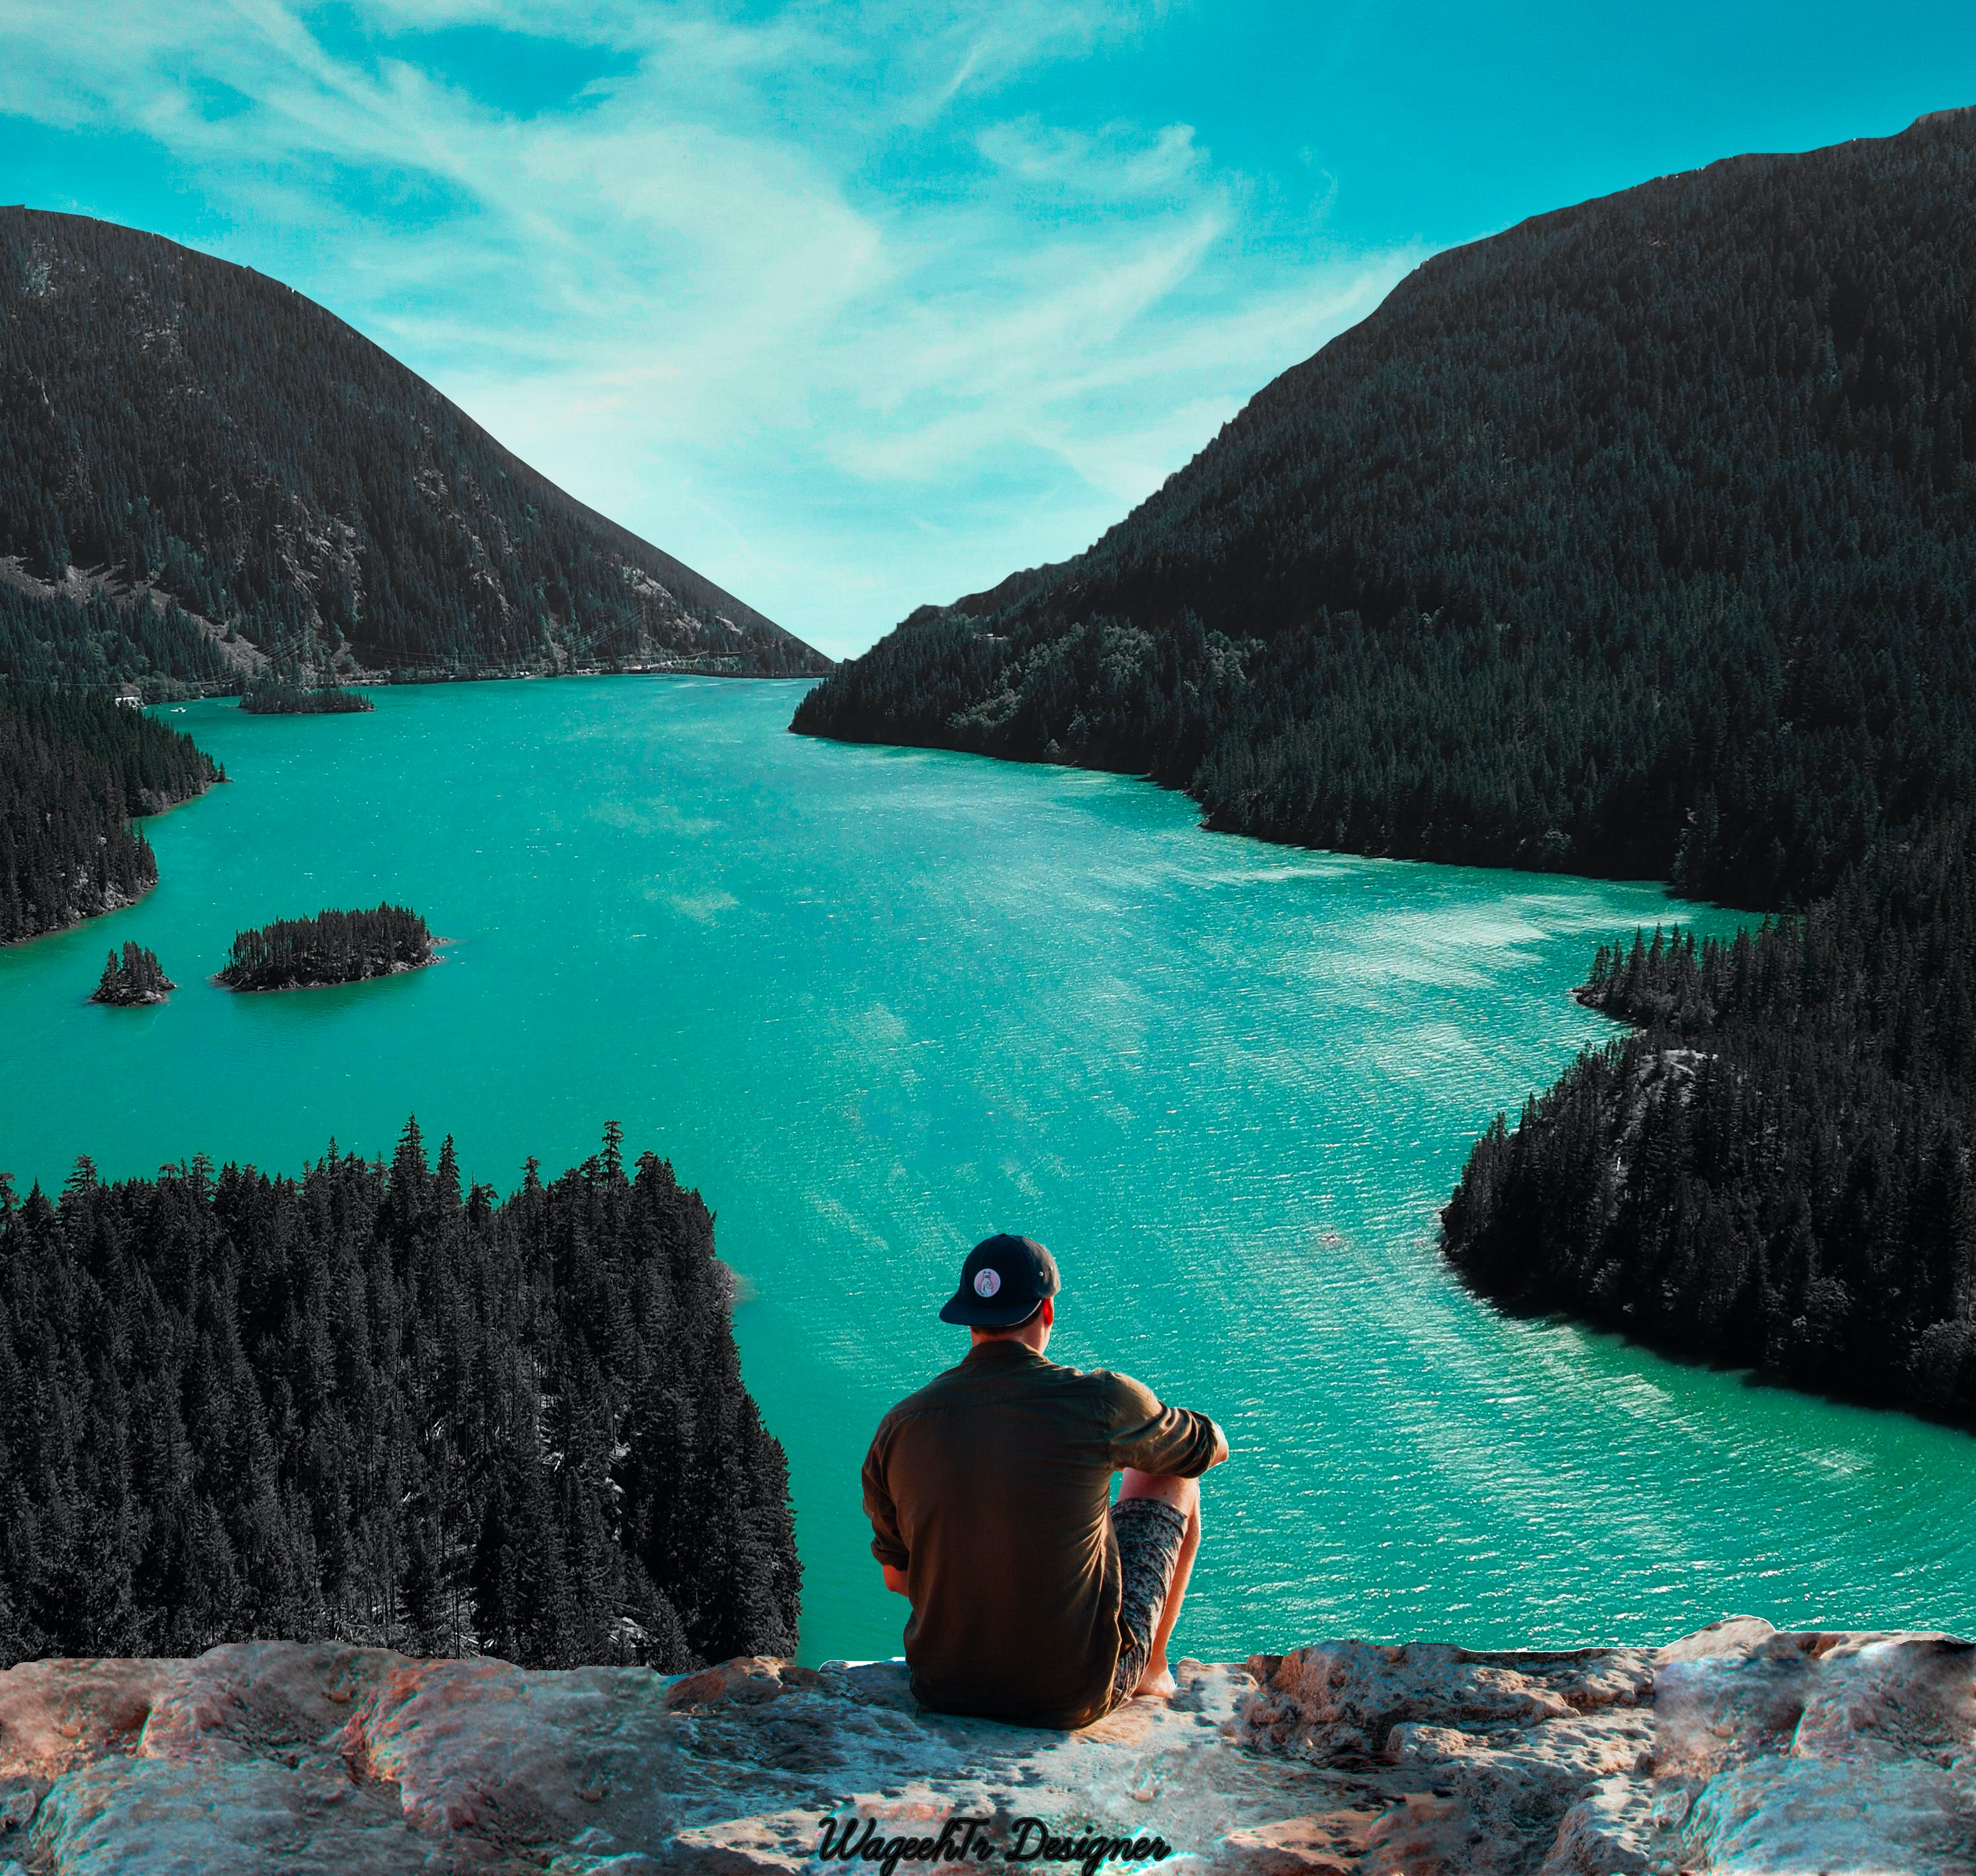 Man Sitting on Cliff in Front of Body of Water